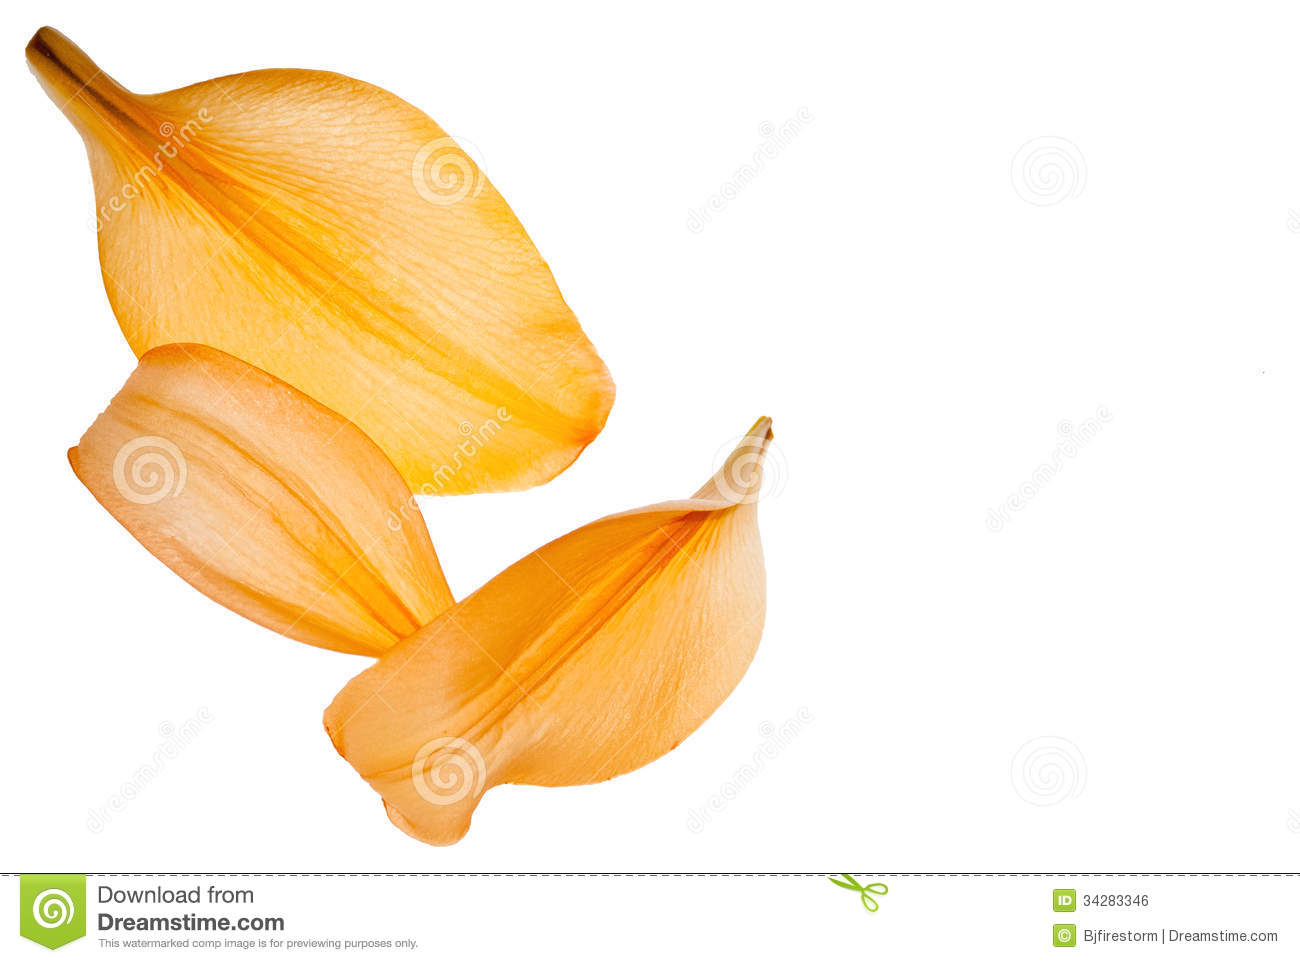 lily petals stock photo image of background fall nature 34283346